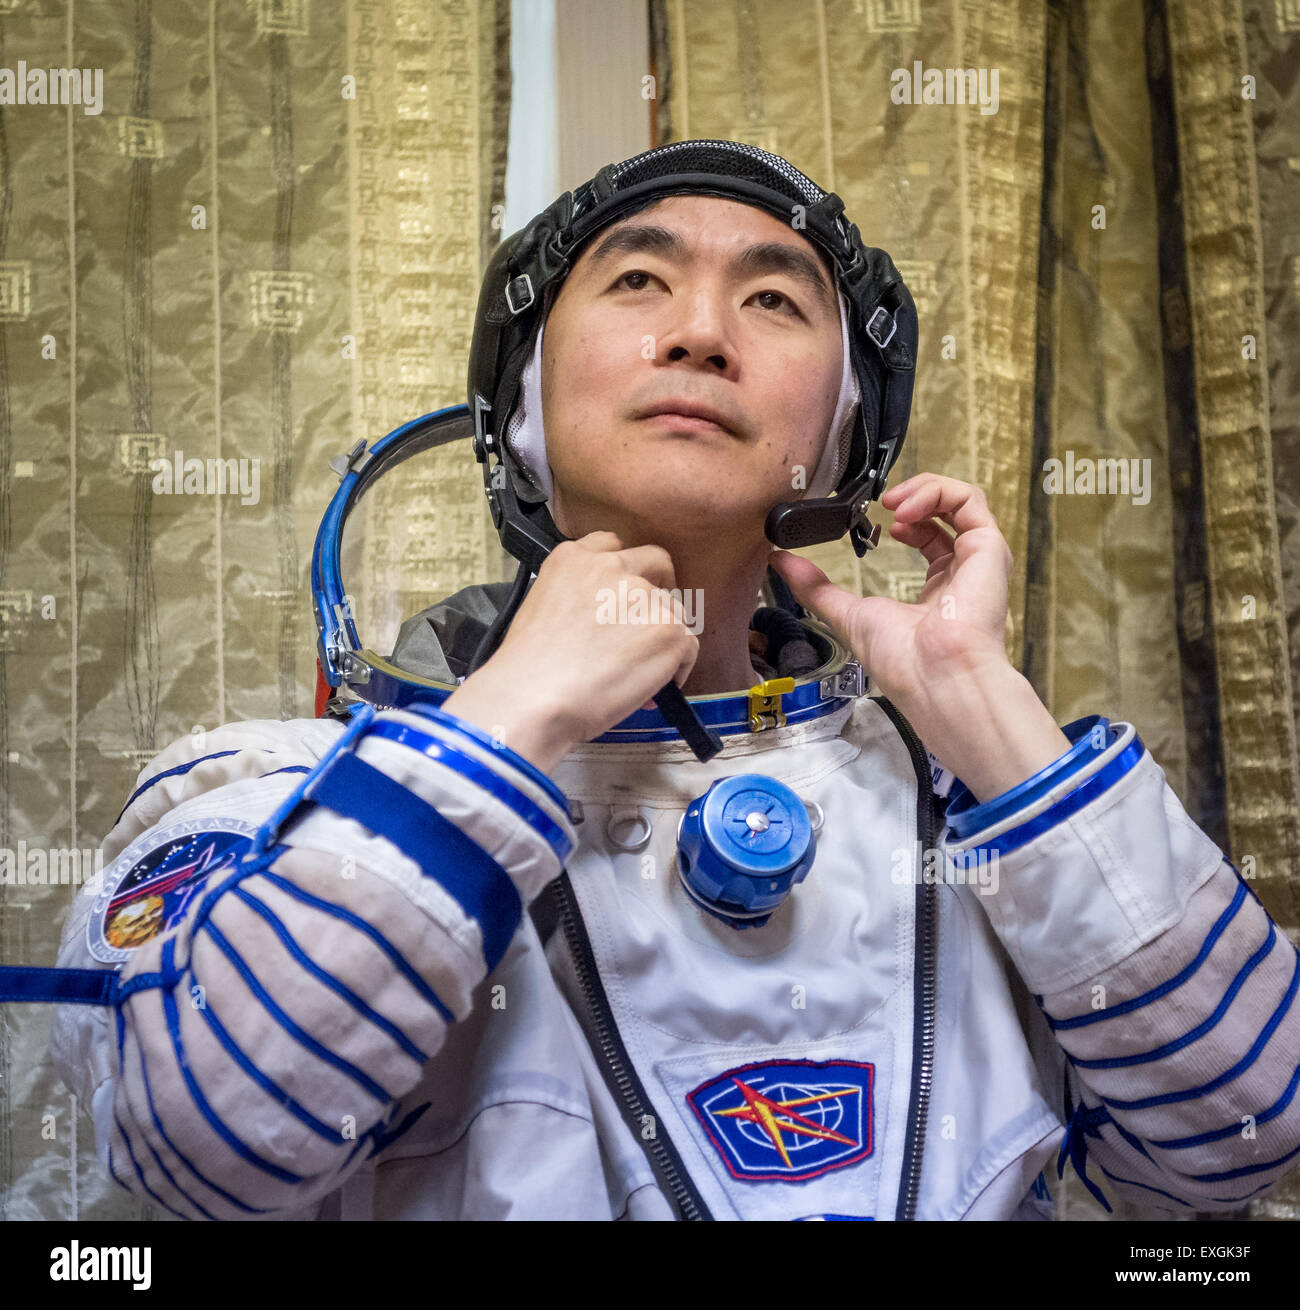 Japan Aerospace Exploration Agency astronaut Kimiya Yui participates in the second day of qualification exams, with - Stock Image